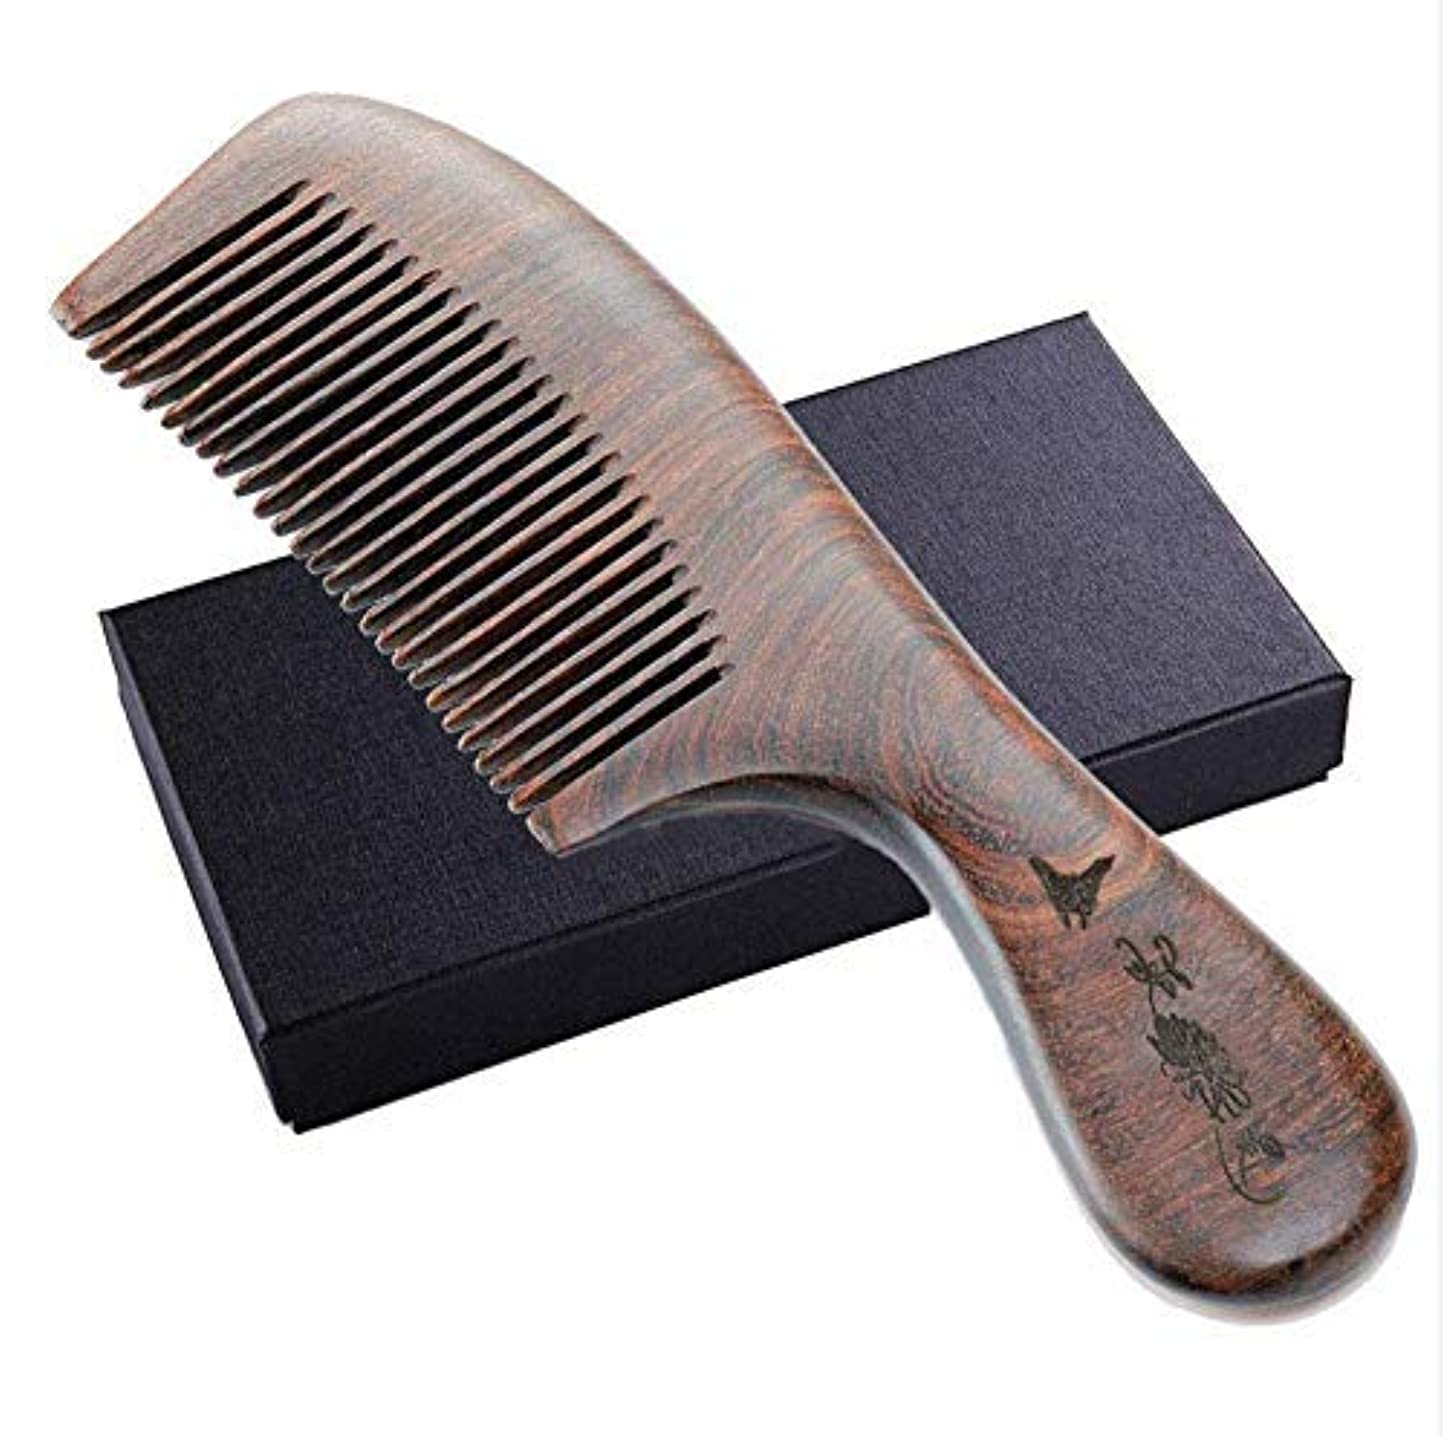 ハーブアルカトラズ島首謀者Wooden Hair Comb, Anti-Static, Detangling Fine Tooth Shower Comb,No Static Natural Wooden Sandalwood Comb for Women, Men [並行輸入品]